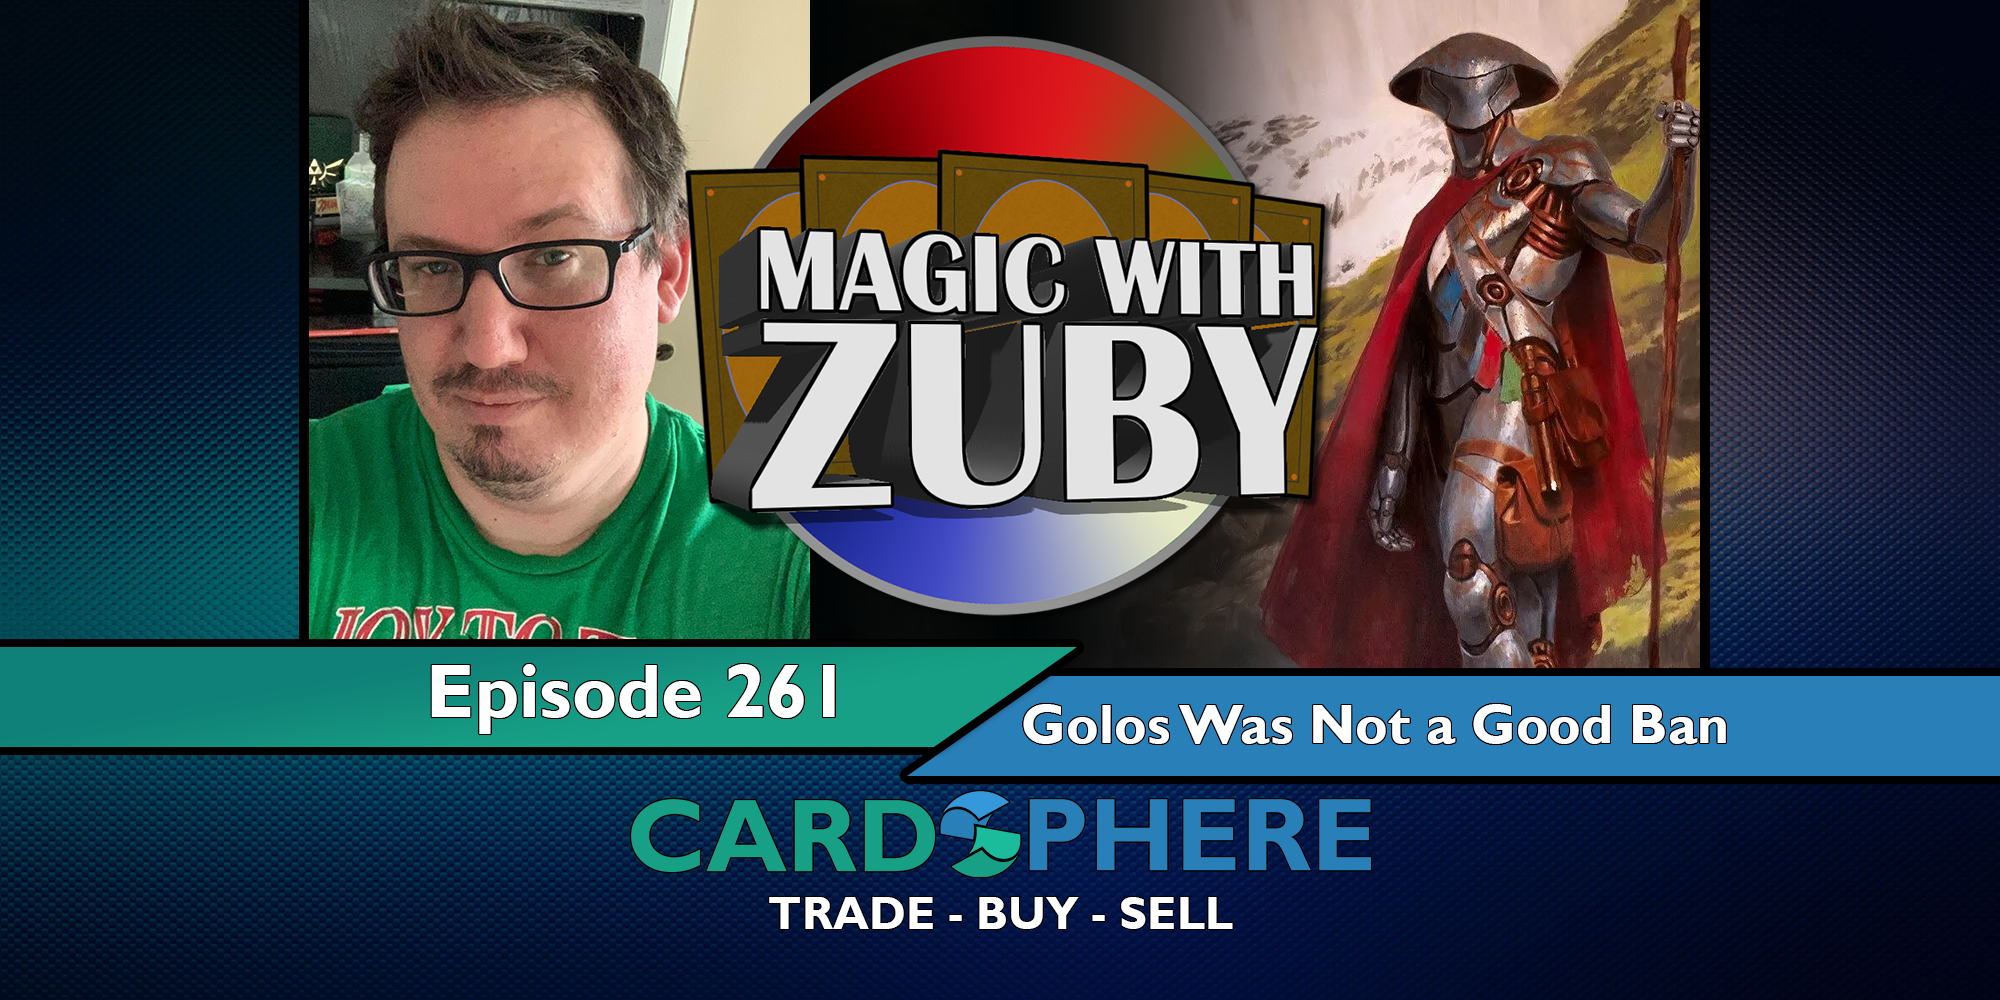 Magic With Zuby Episode 261 - Golos Was Not a Good Ban